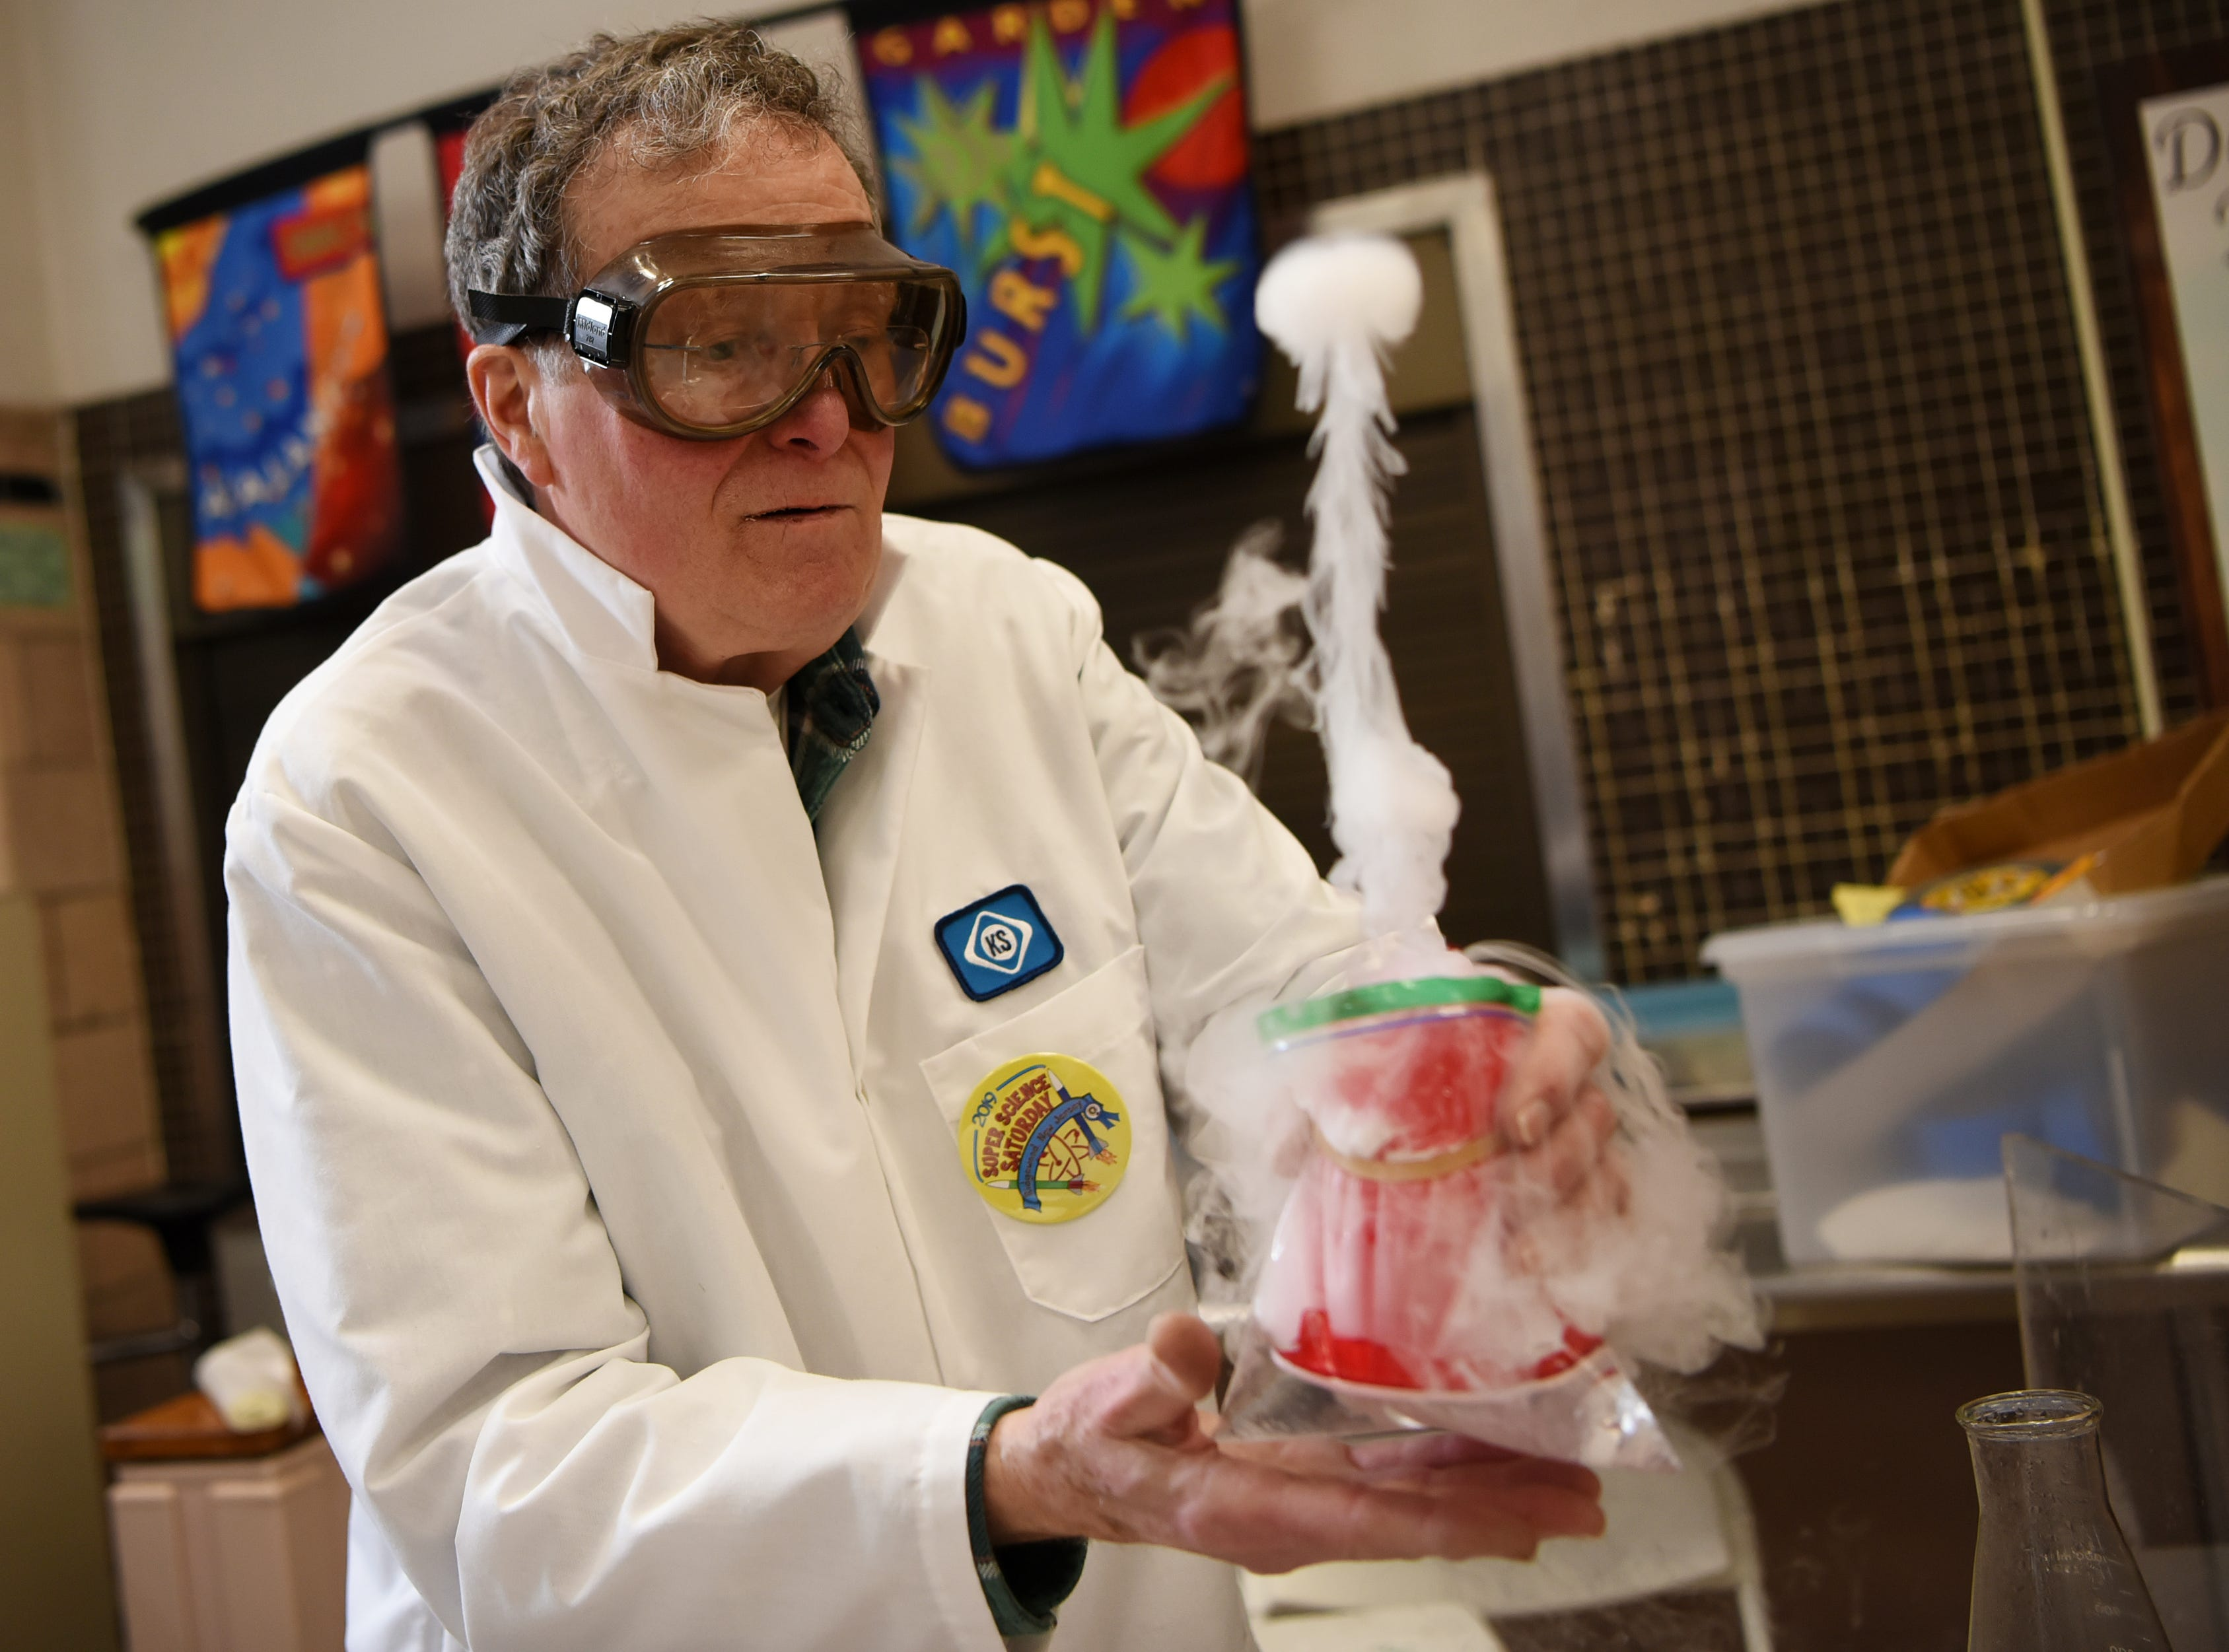 Richard Copp does an experiment with dry ice. This is one of many activities during Super Science Saturday held at Ridgewood High School in Ridgewood on Saturday March 2, 2019.